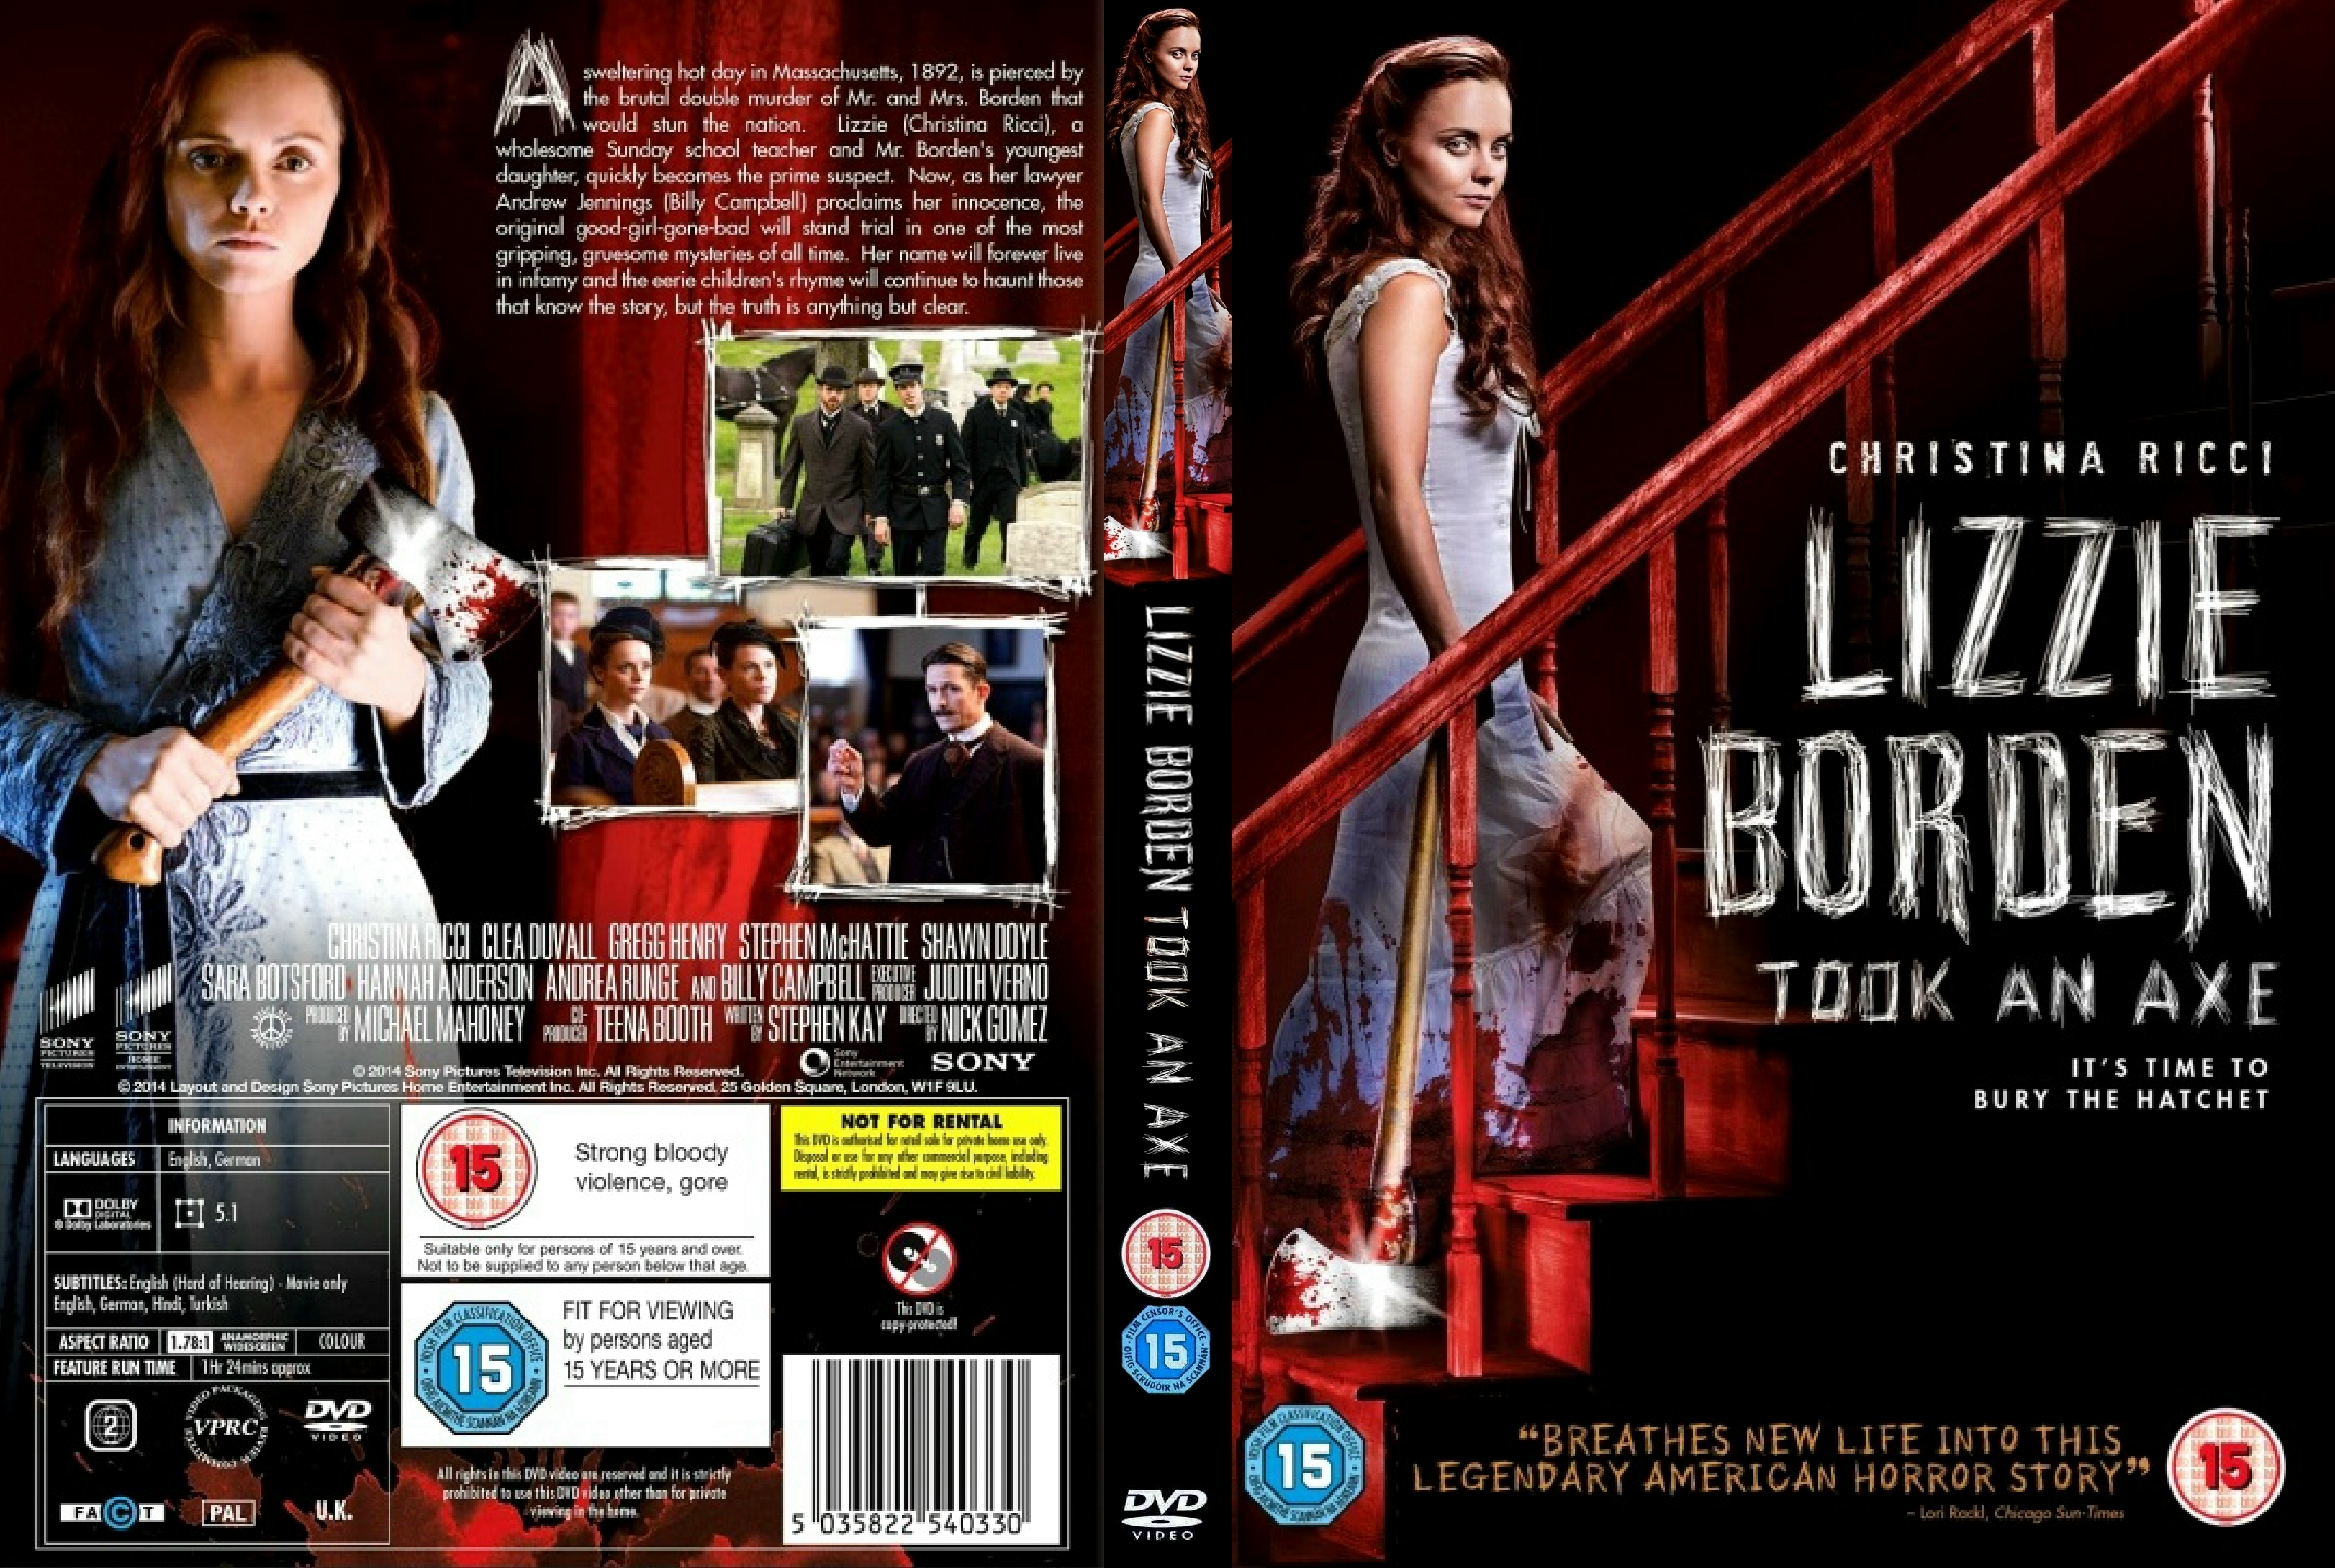 covers box sk lizzie borden took an ax 2014 high quality dvd